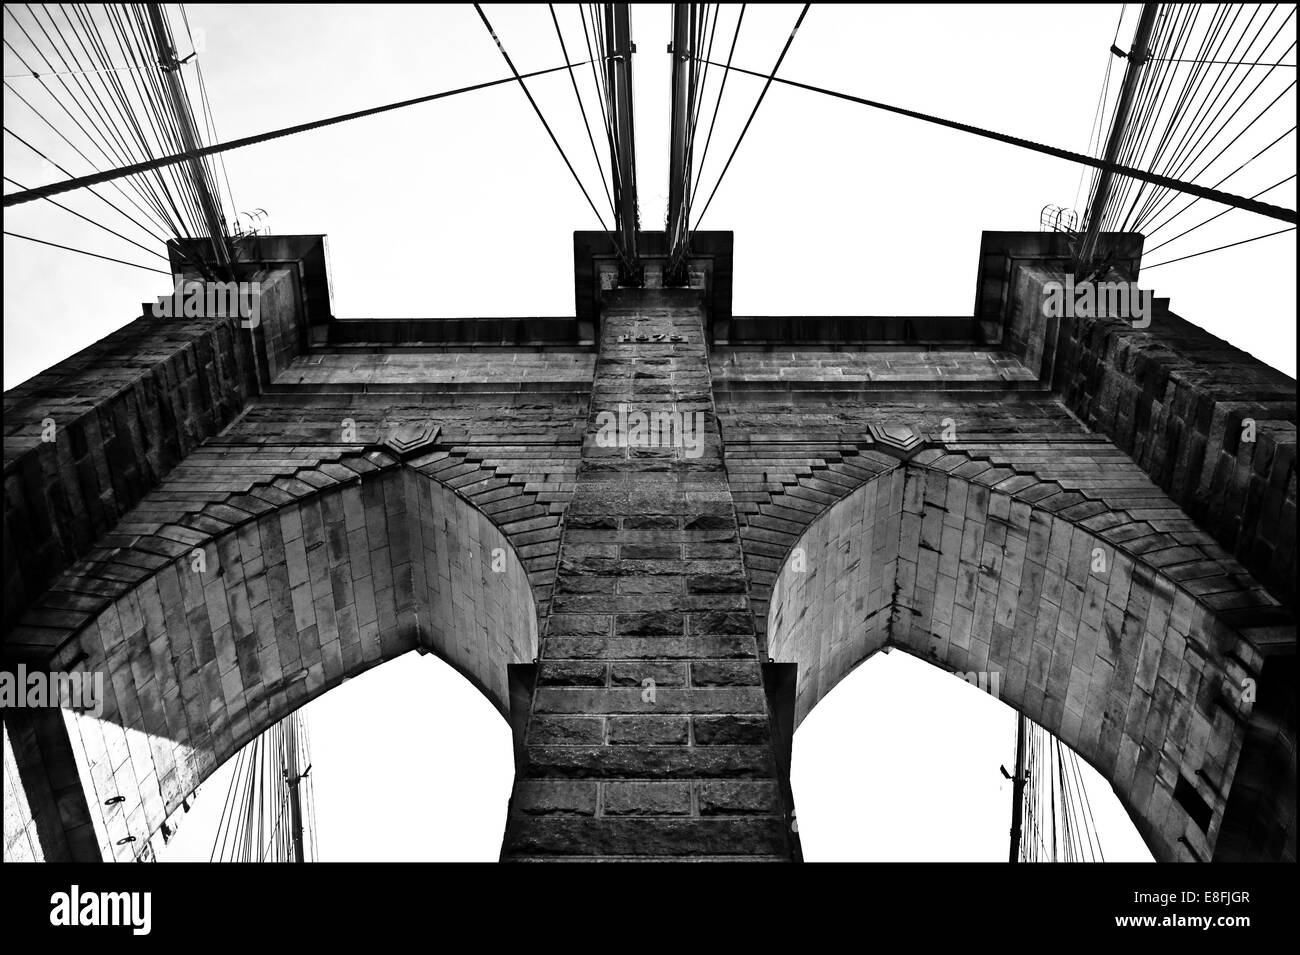 USA, New York City, Lower East Side, une partie du pont de Brooklyn, vu d'en bas Photo Stock